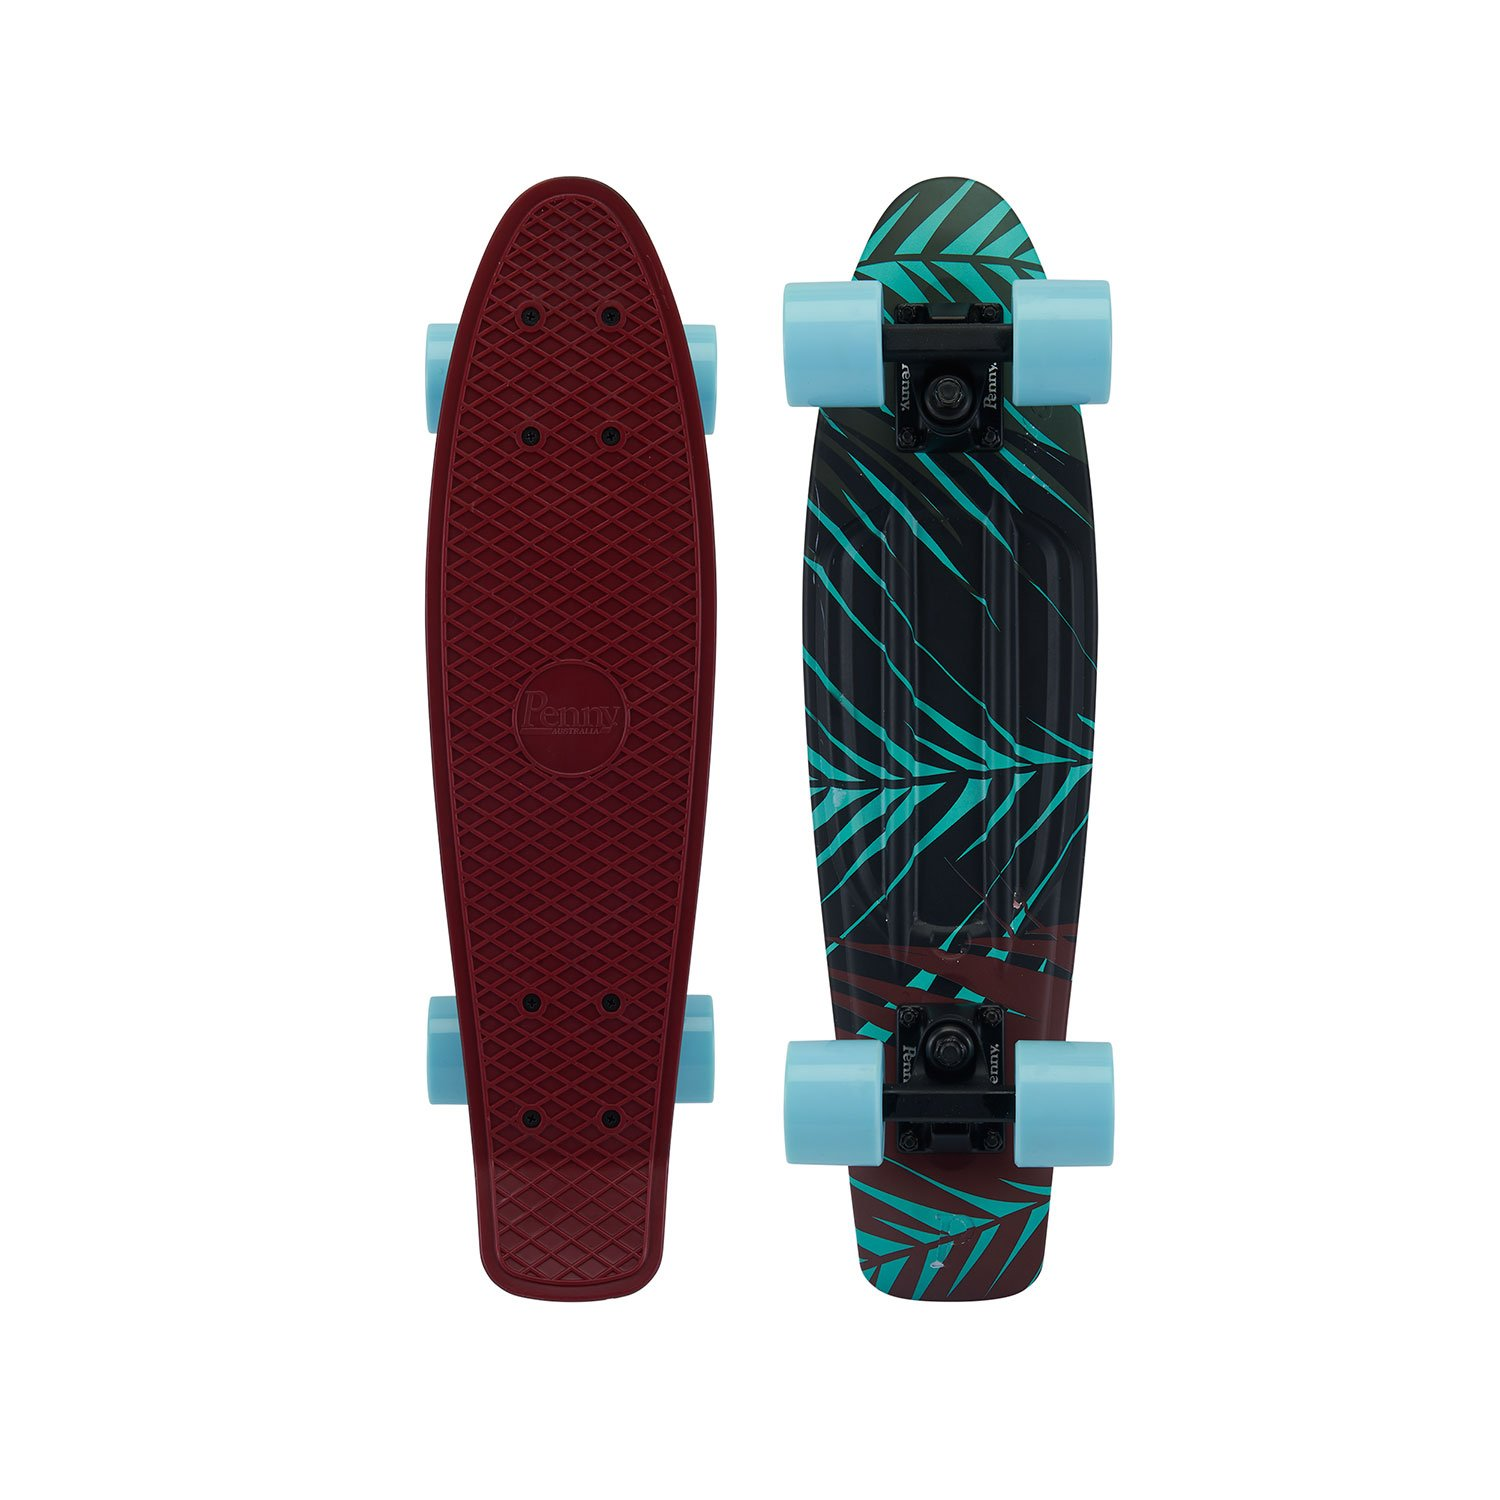 Penny Graphic Skateboard - Palm Shadow 22''